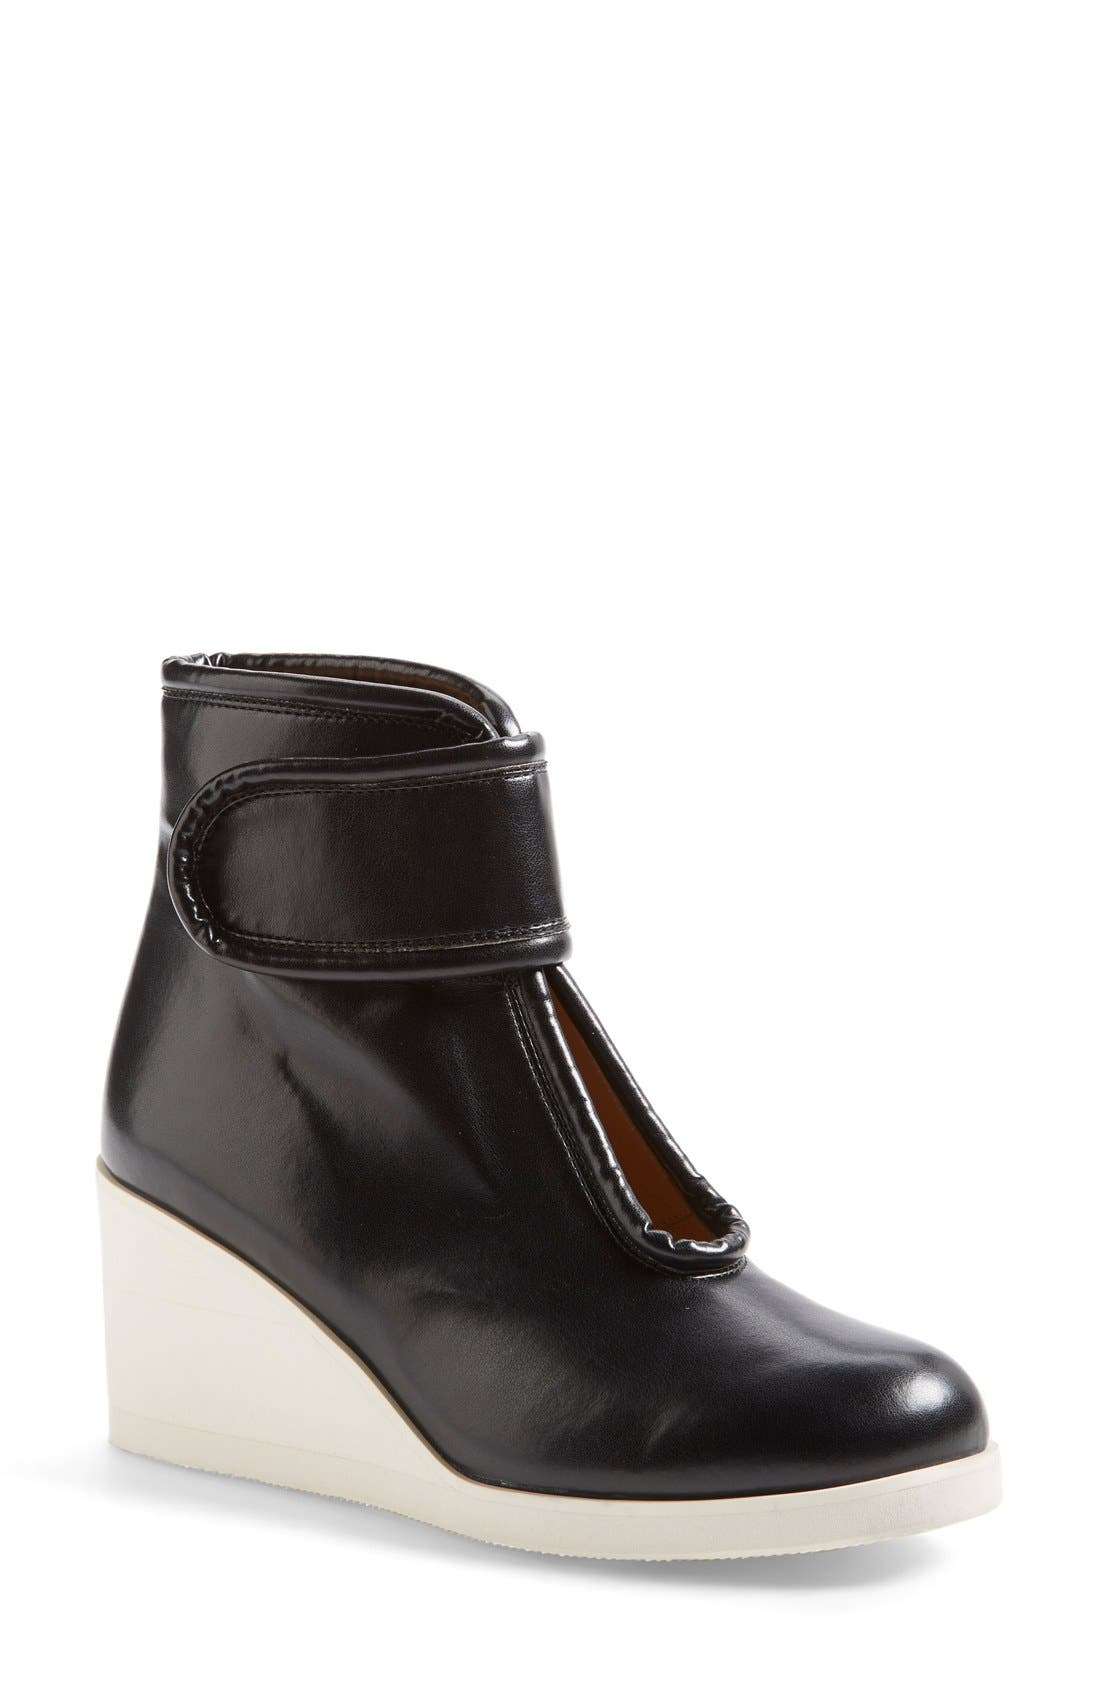 Alternate Image 1 Selected - MM6 Maison Margiela Nappa Leather Wedge Bootie (Women)